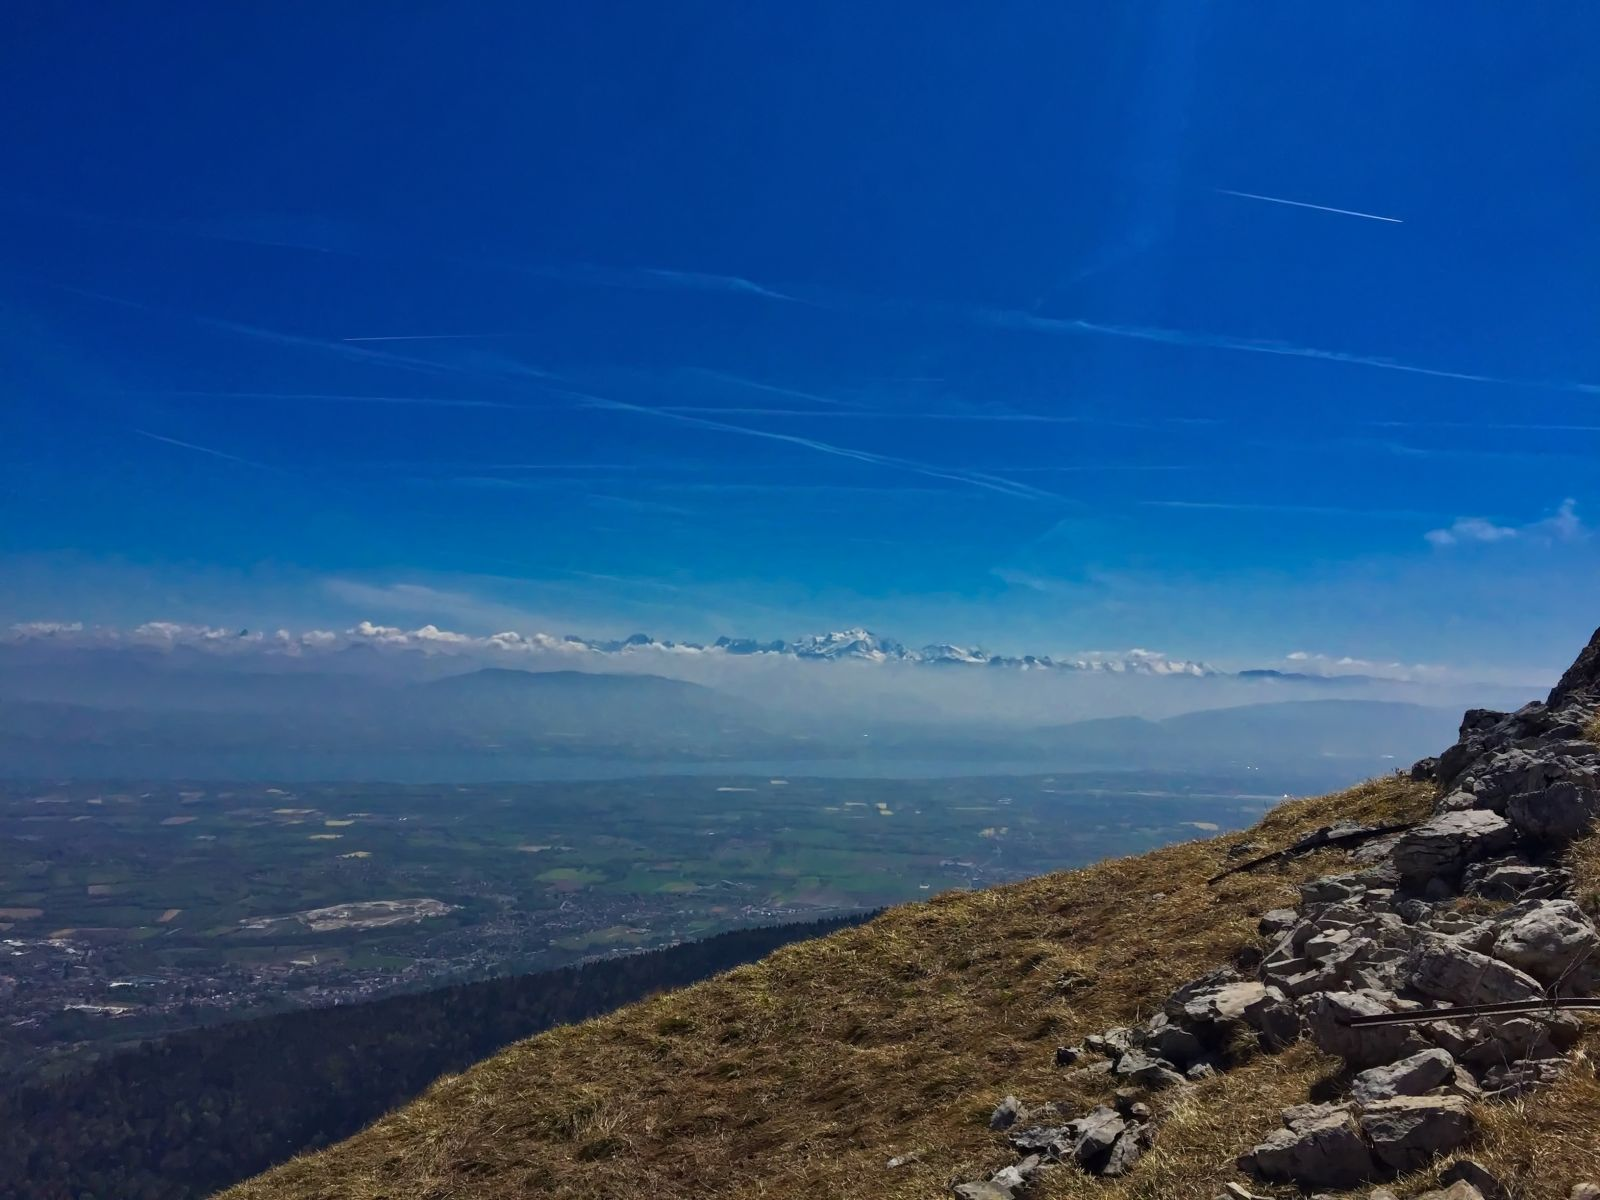 views of the Montblanc and Geneva region from Montrond